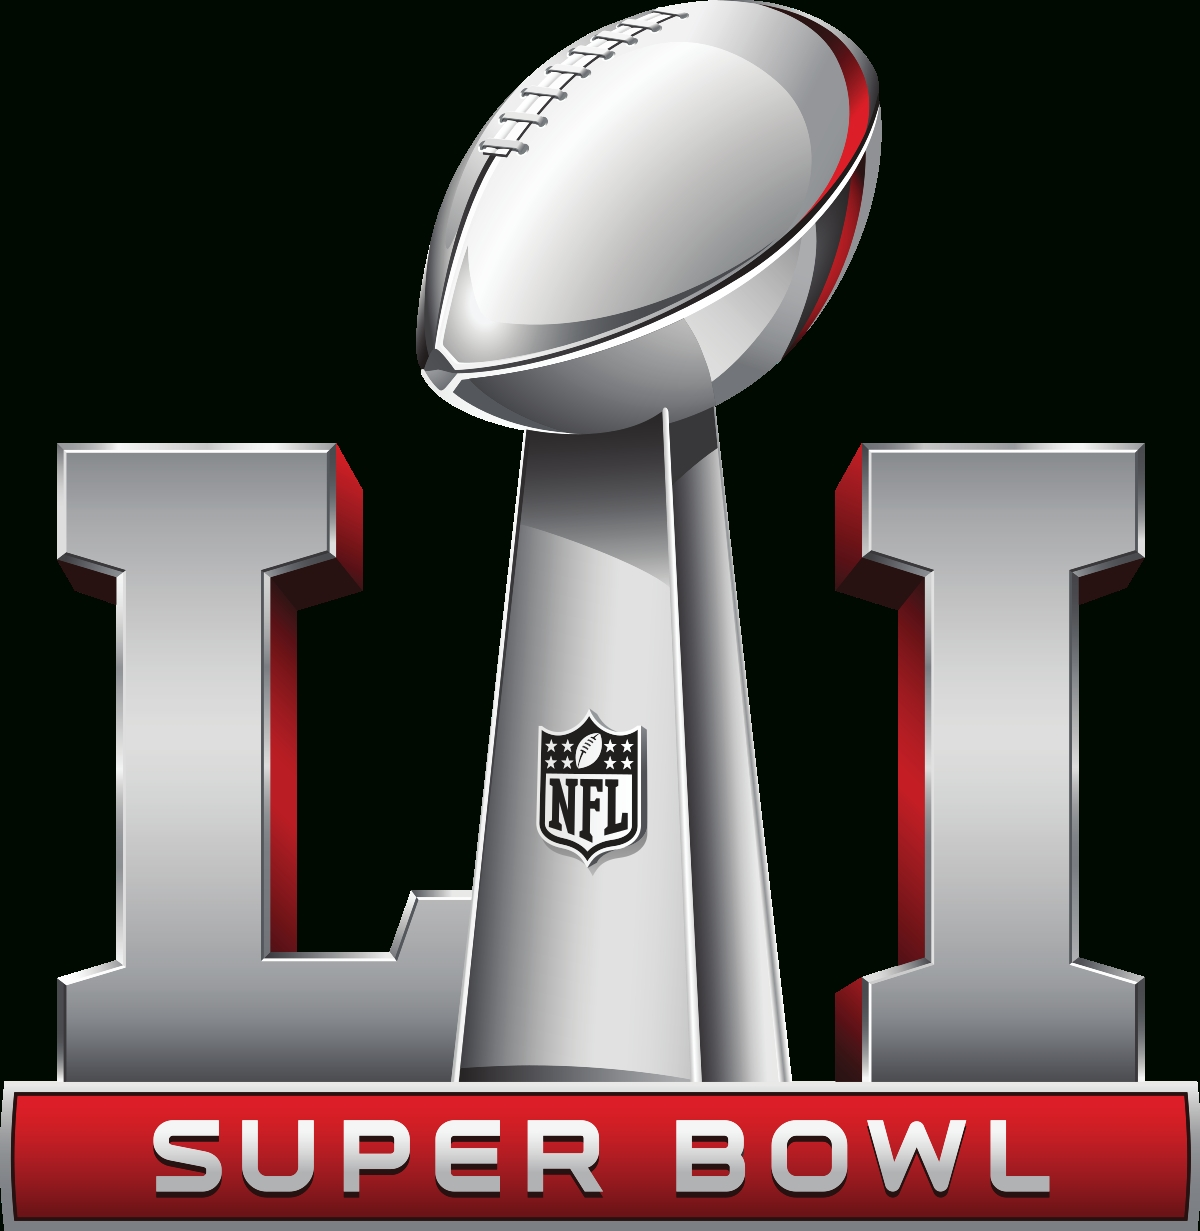 Super Bowl Li - Wikipedia regarding Nfl Super Bowl 2017